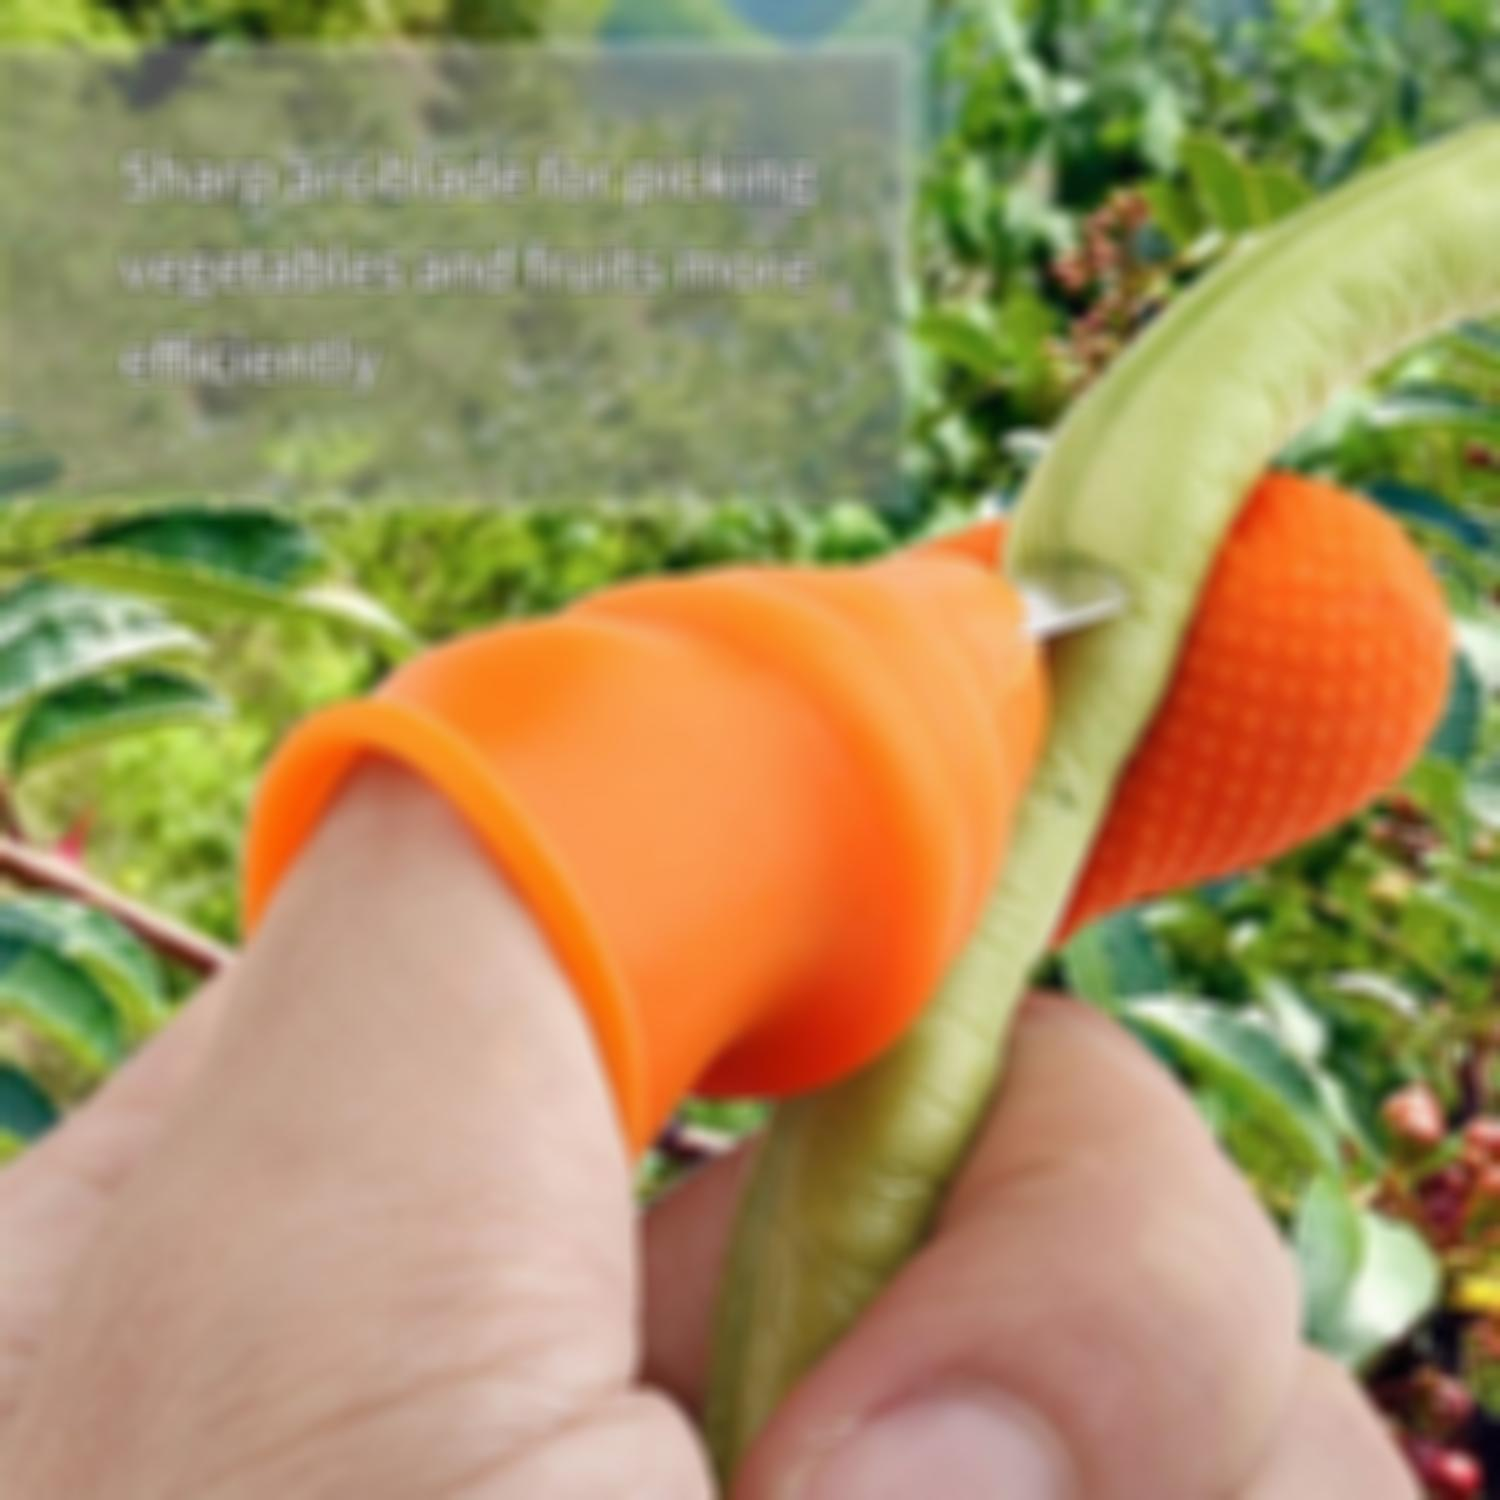 (50% Off Today)Pick vegetables, pick fruit thumb knife